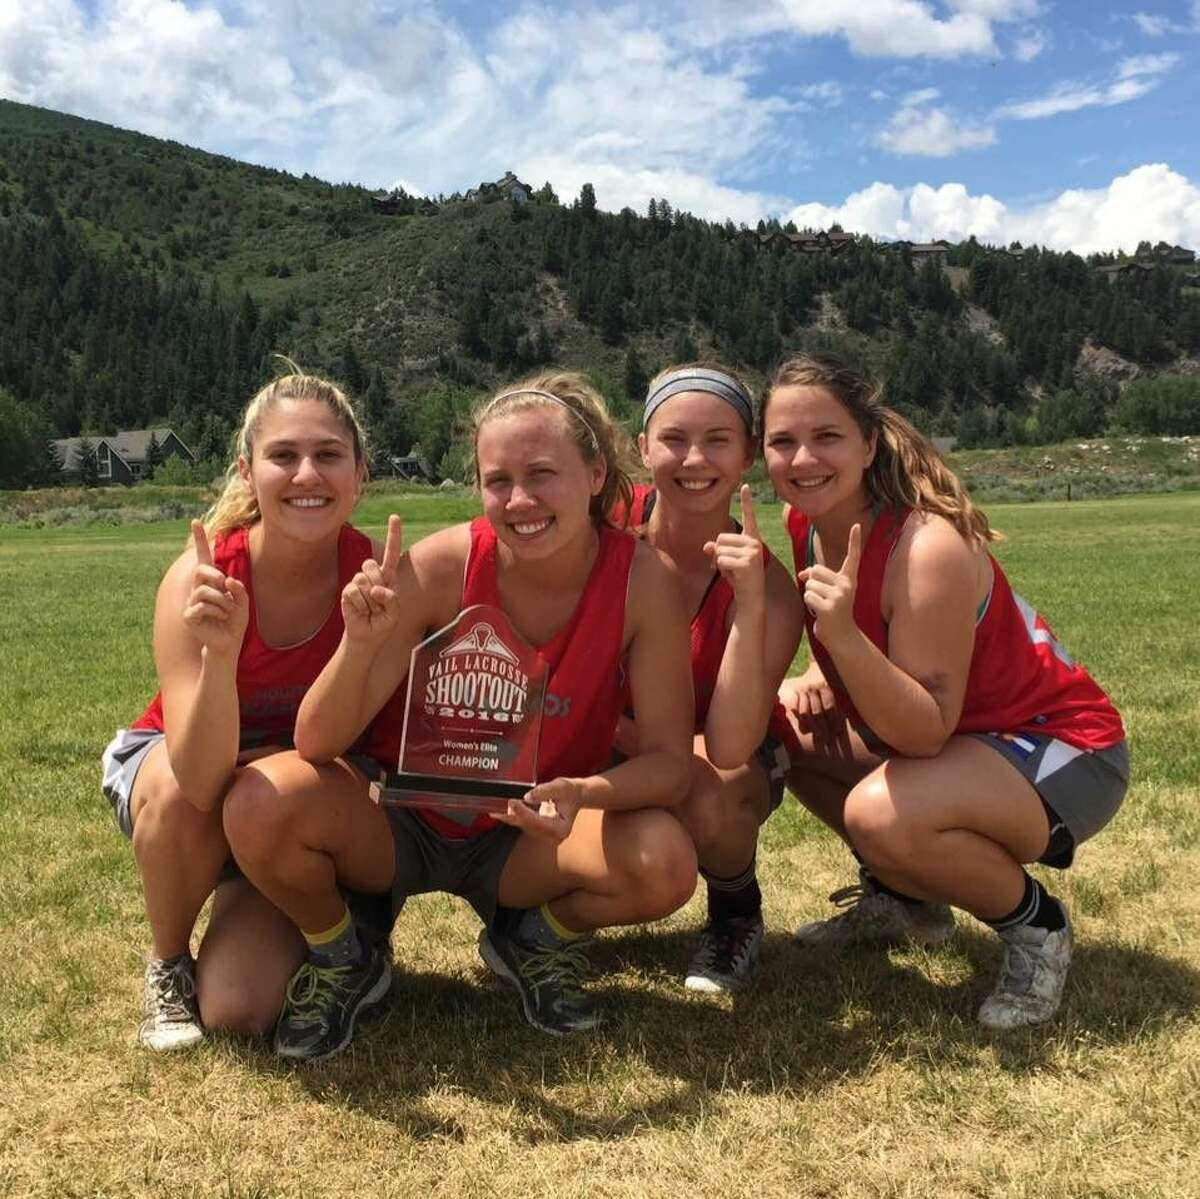 Several members of the Houston Heat Lacrosse team with their trophy from the Vail Shootout. The team wound up finishing third in their bracket